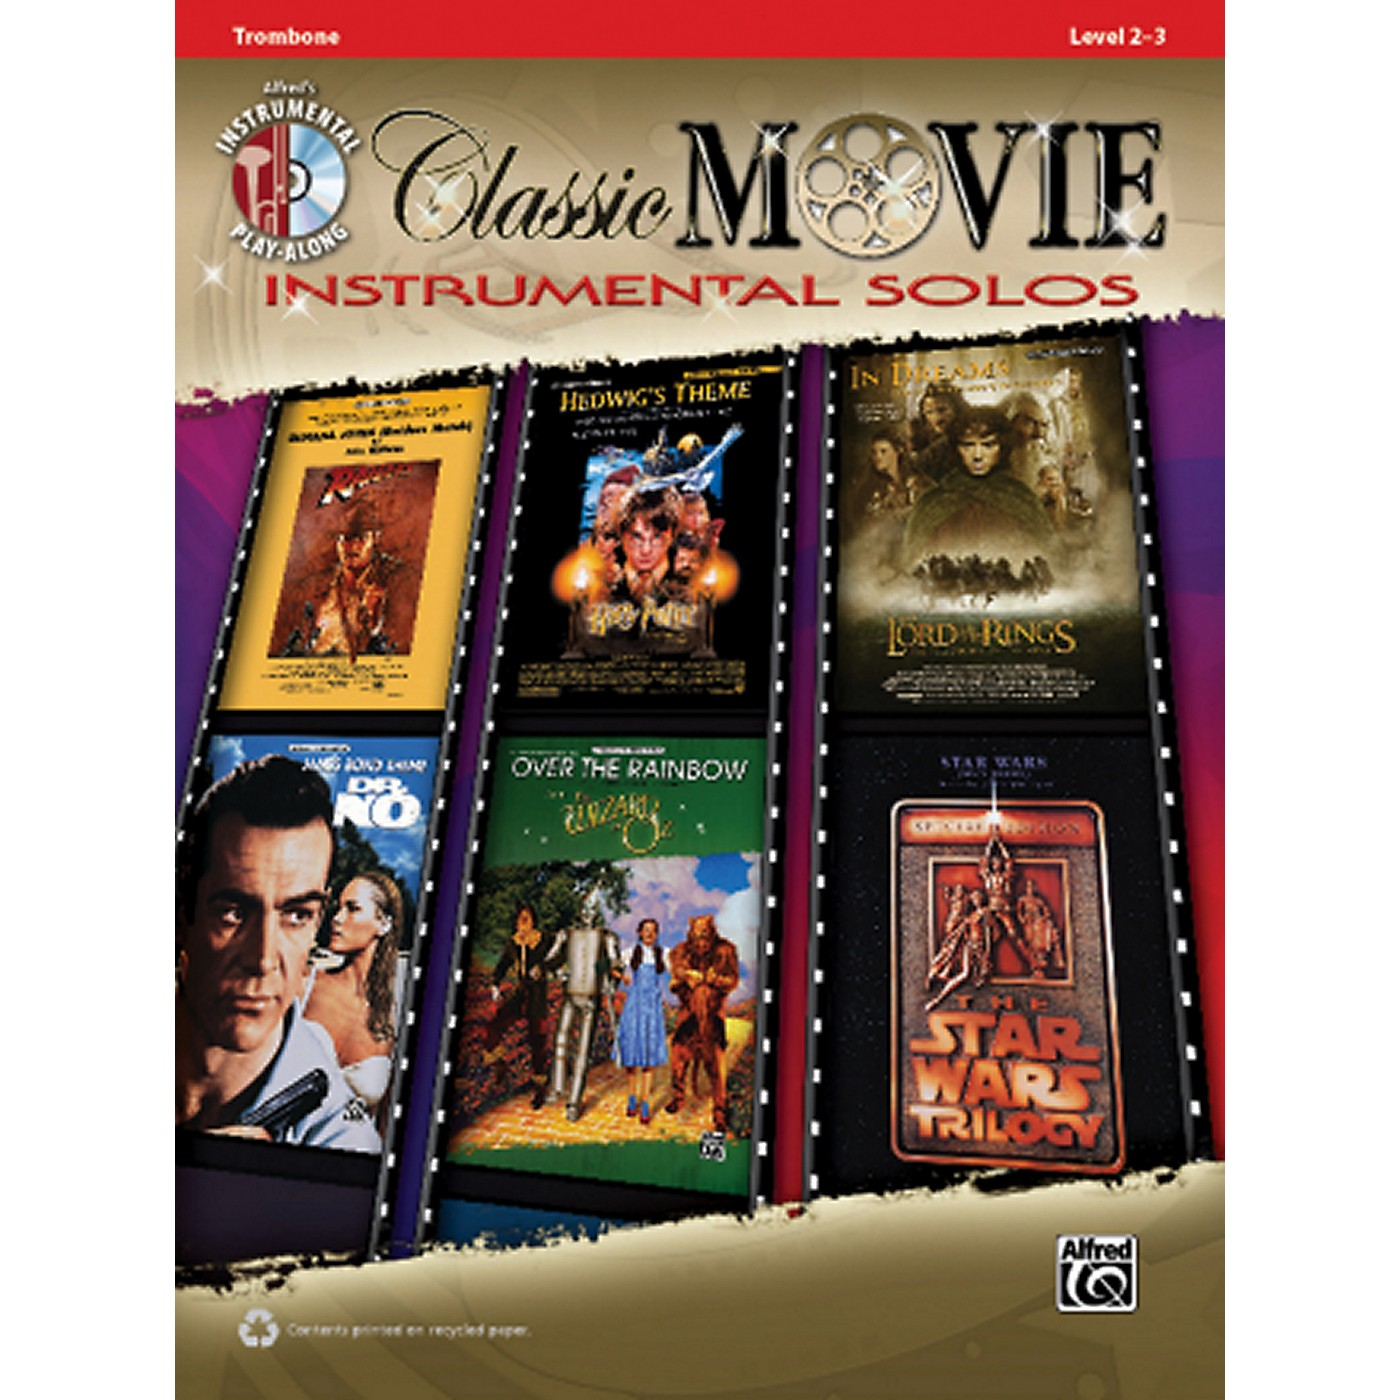 Alfred Classic Movie Instrumental Solos Trombone Play Along Book/CD thumbnail